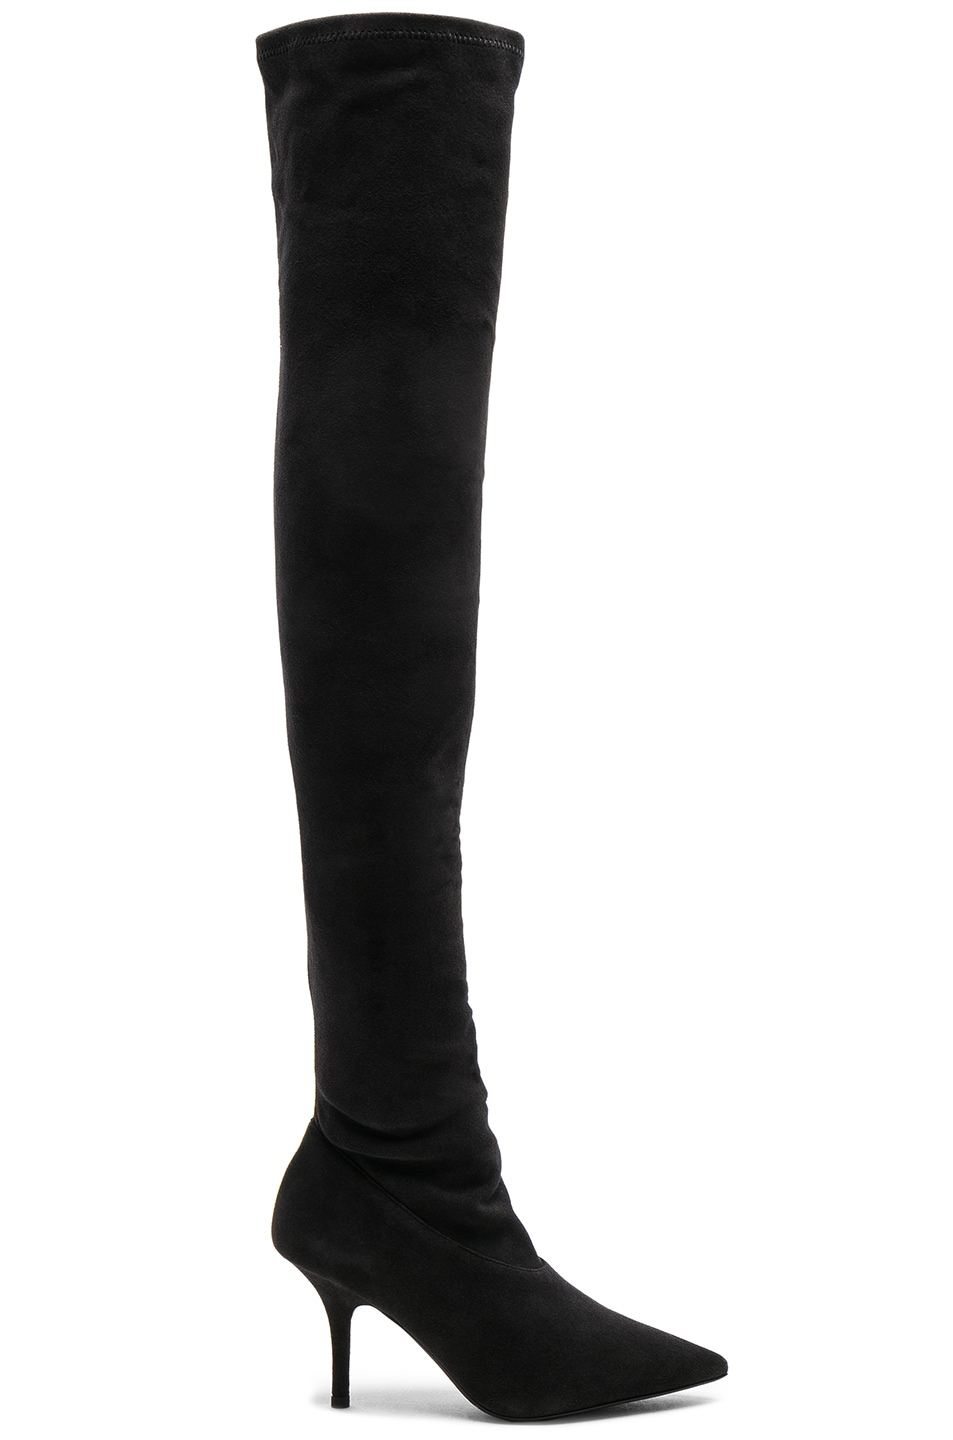 8fe79d5e716d3 Image 1 of YEEZY Season 5 Suede Thigh High Boots in Graphite